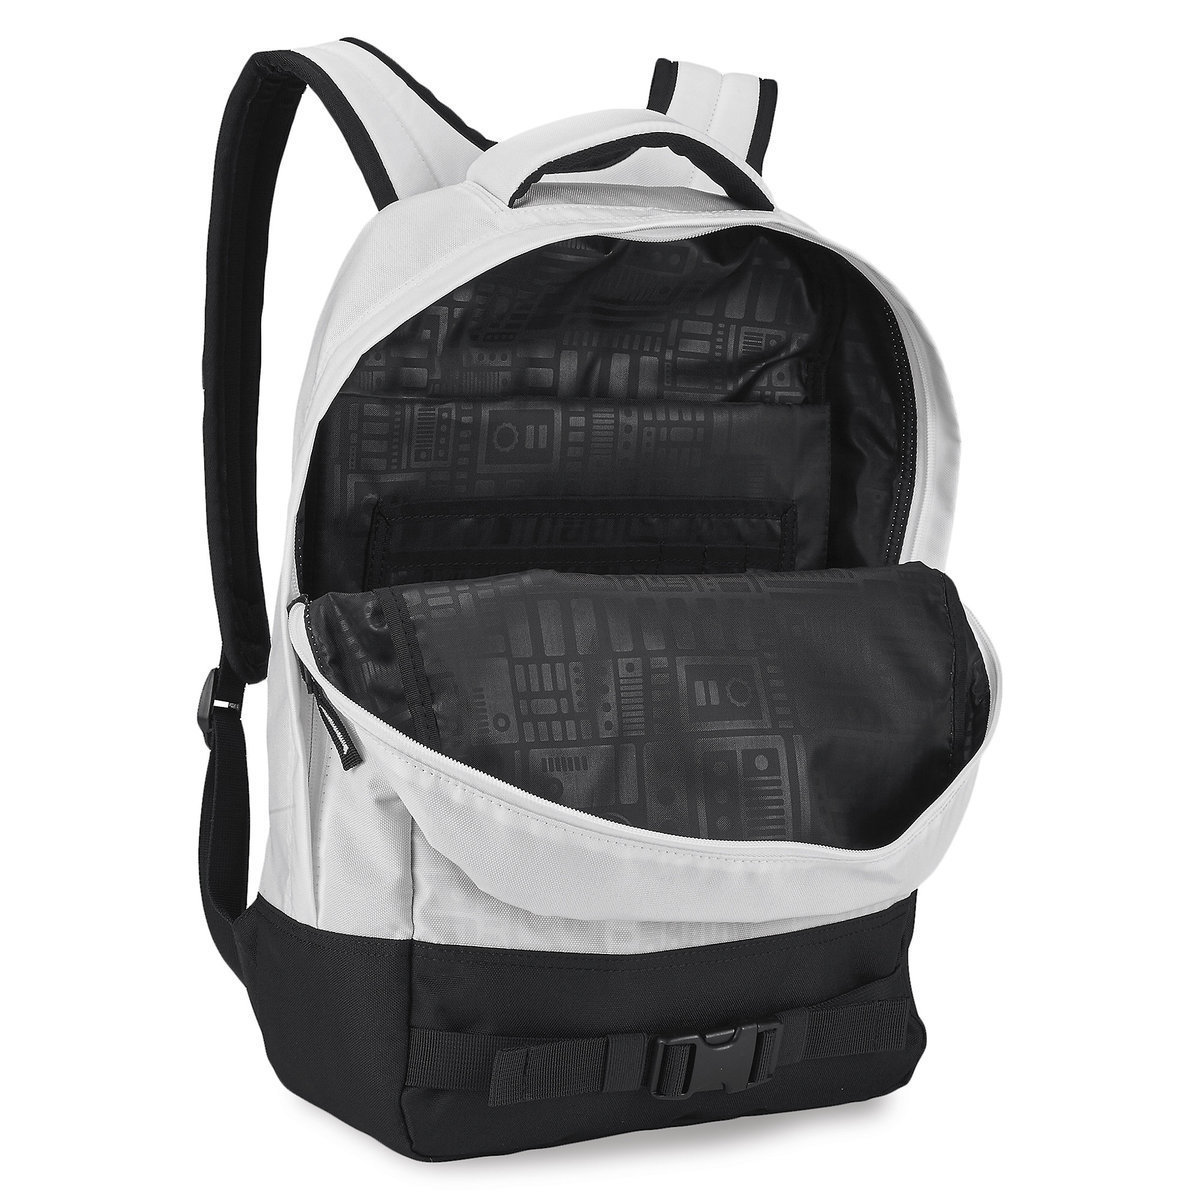 ◎送料込◎ Stormtrooper Del Mar Backpack - Star Wars -